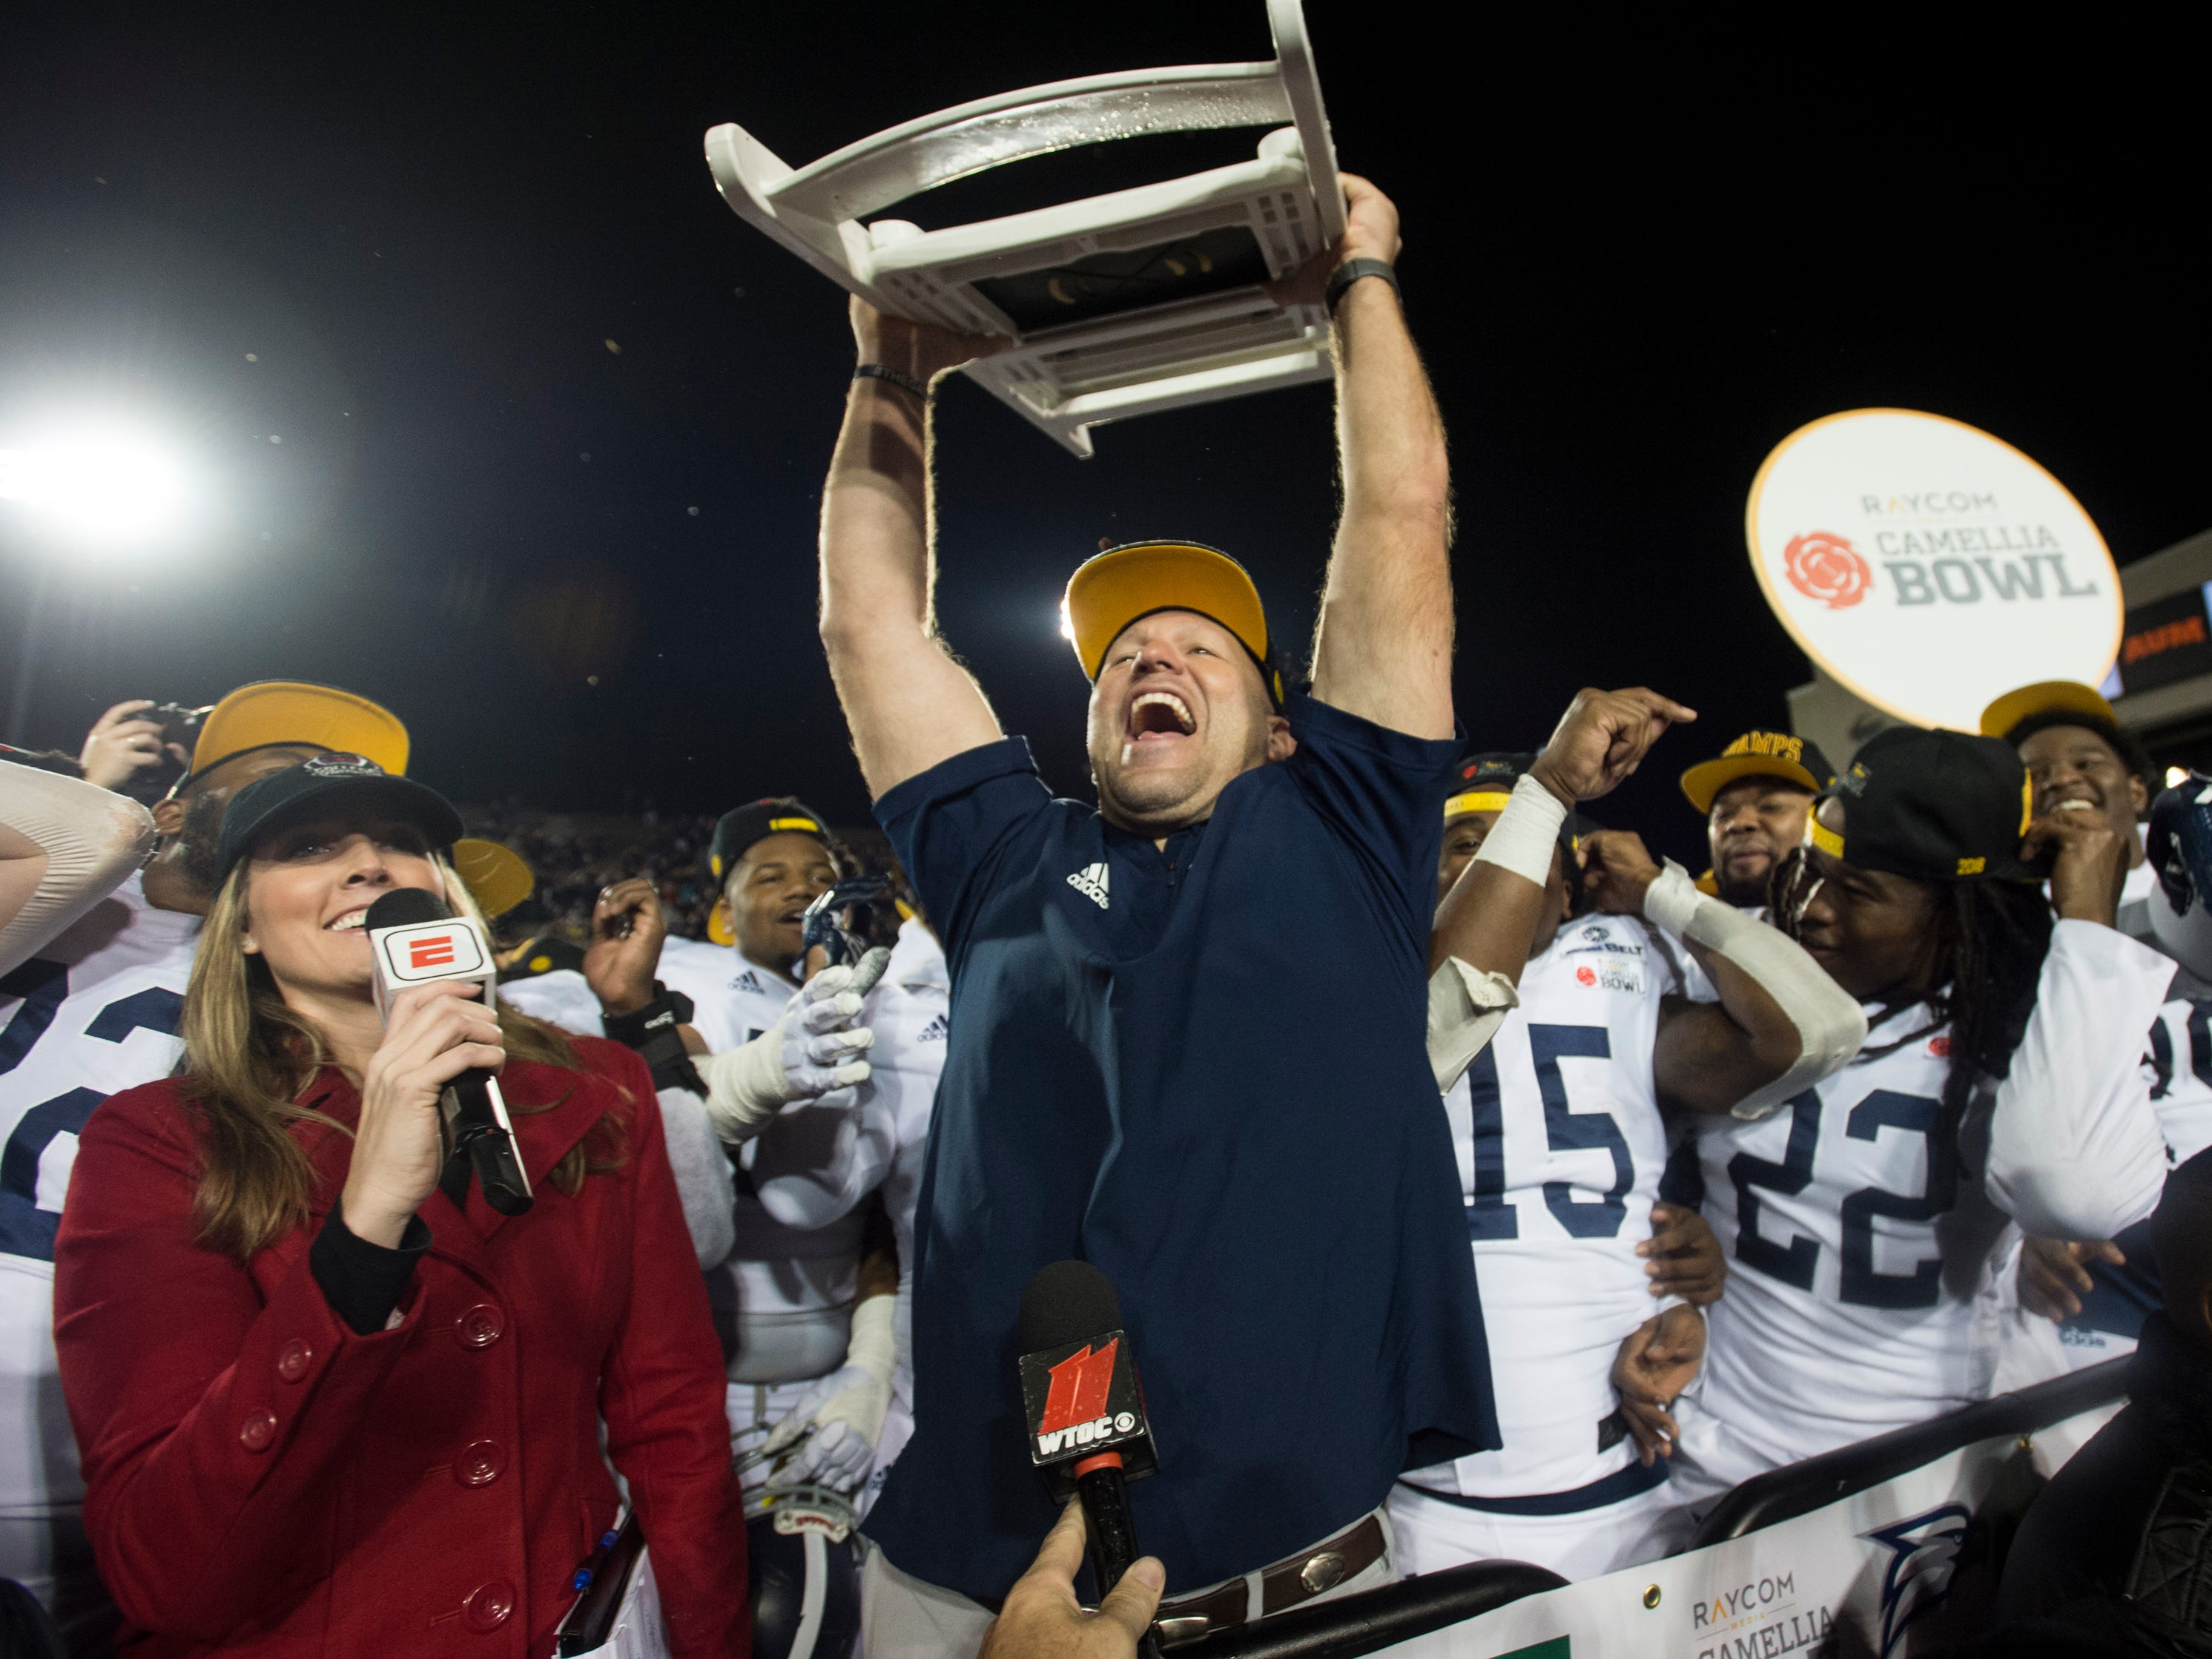 Georgia Southern head coach Chad Lunsford holds up a chair after the Camellia Bowl at Cramton Bowl in Montgomery, Ala., on Saturday, Dec. 15, 2018. Georgia Southern defeated Eastern Michigan 23-21.